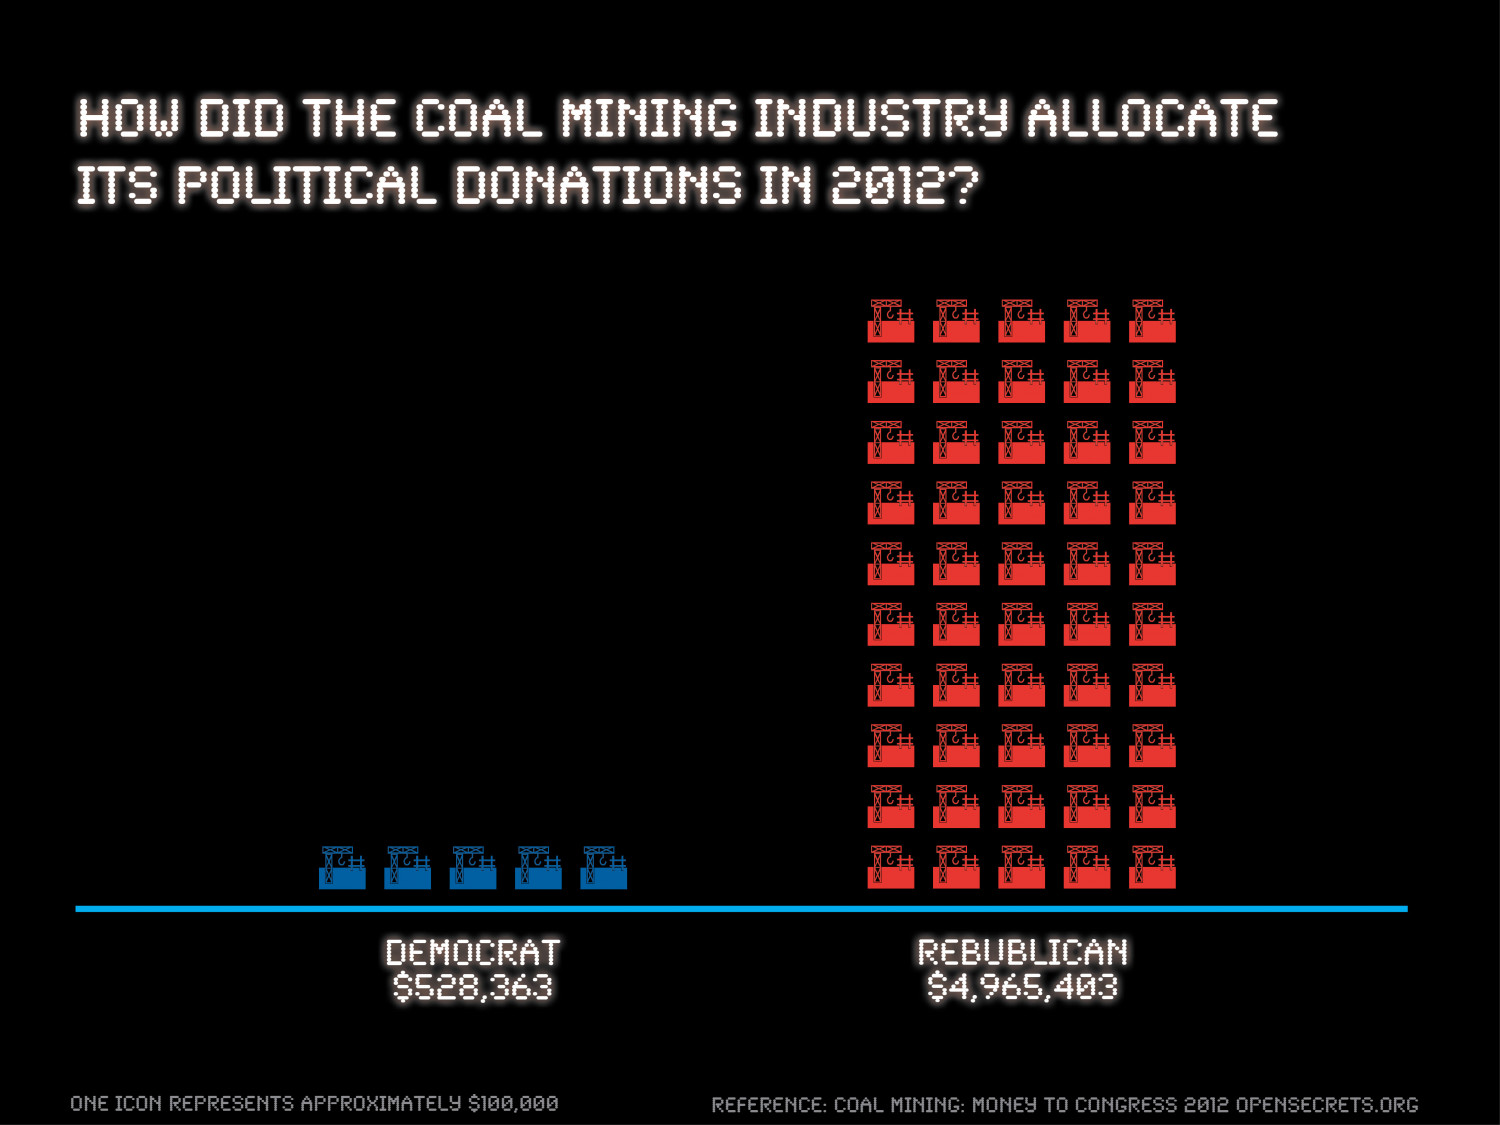 Republican Coal: Politician Donations from The American Coal Mining Industry in 2012 Infographic